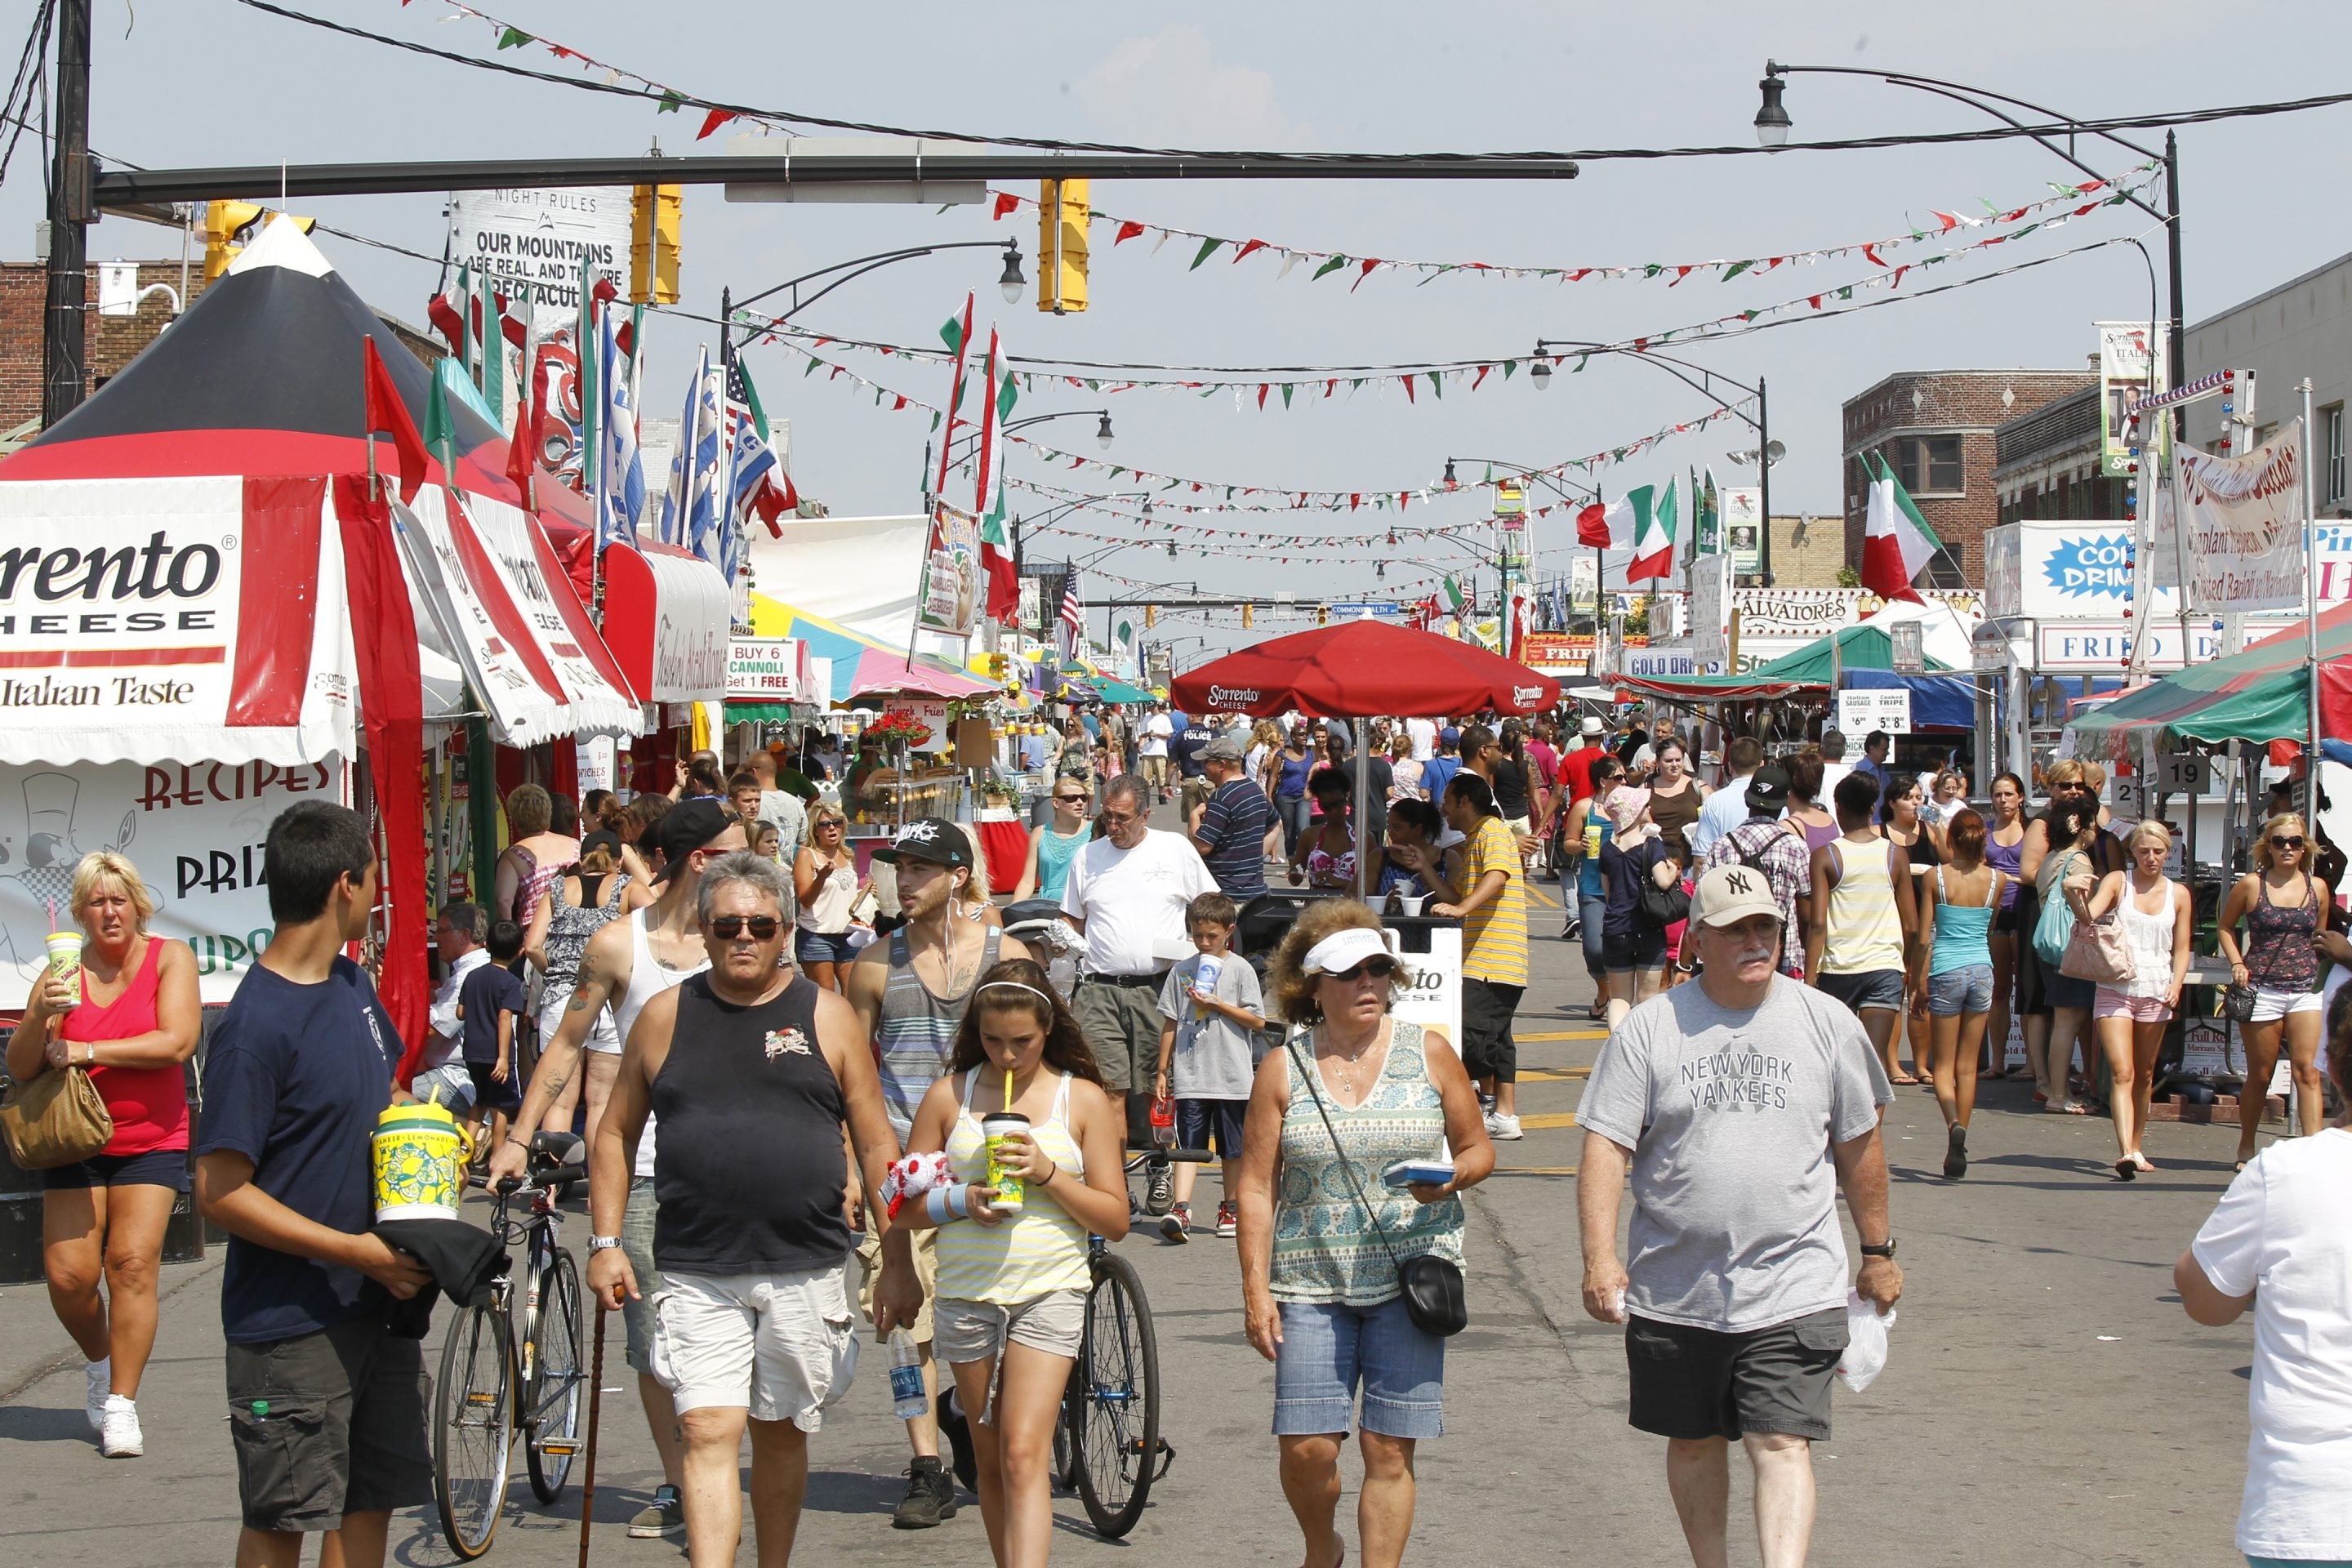 Gusto is seeking submissions for its annual Festival Guide that will include information on such crowd favorites as the Italian Festival. (Harry Scull Jr. / News file photo)